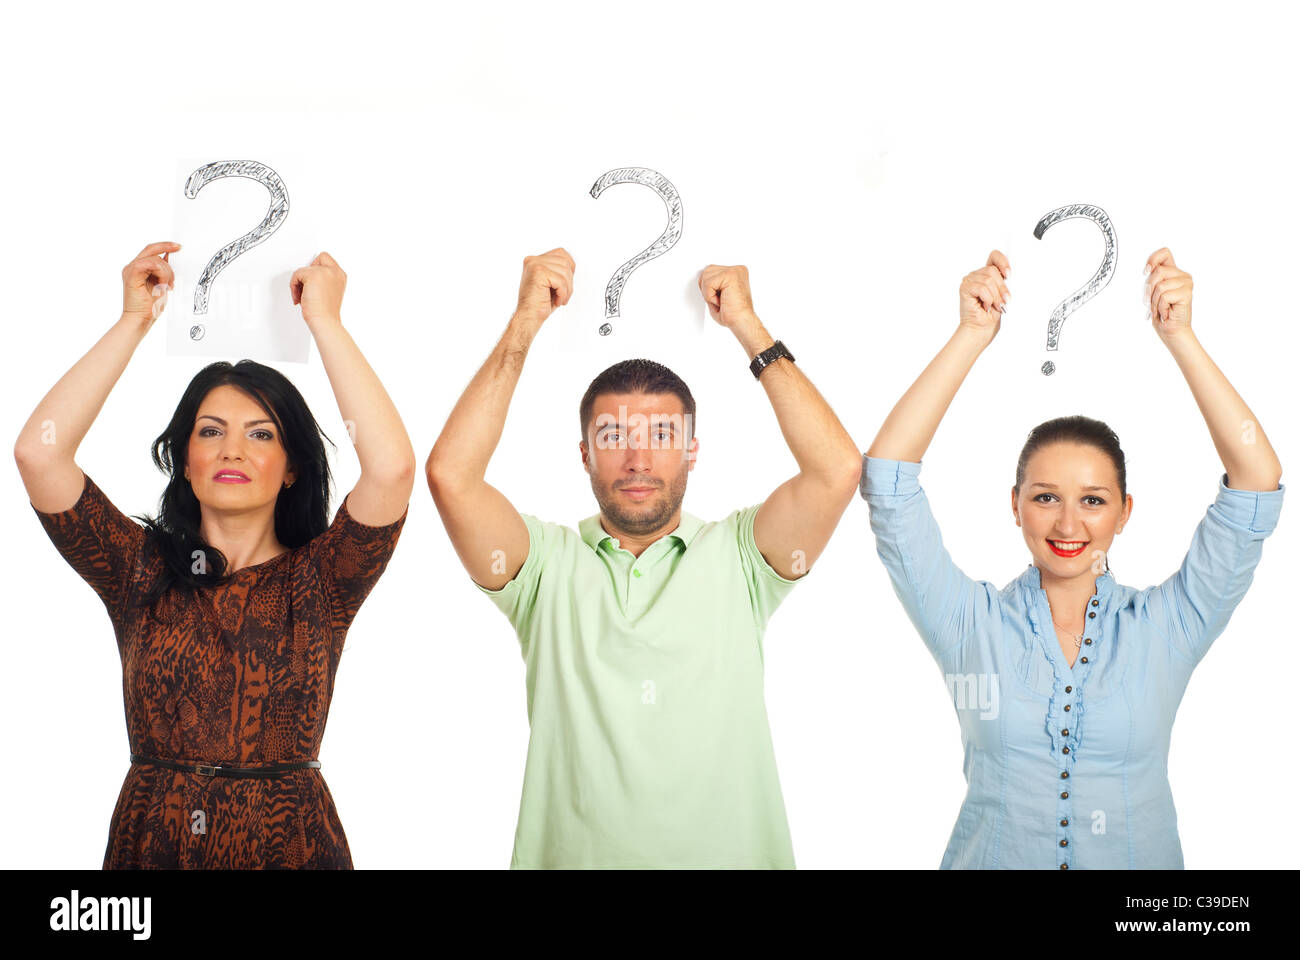 Three casual people standing in a line and holding questions marks over their heads isolated on white background - Stock Image